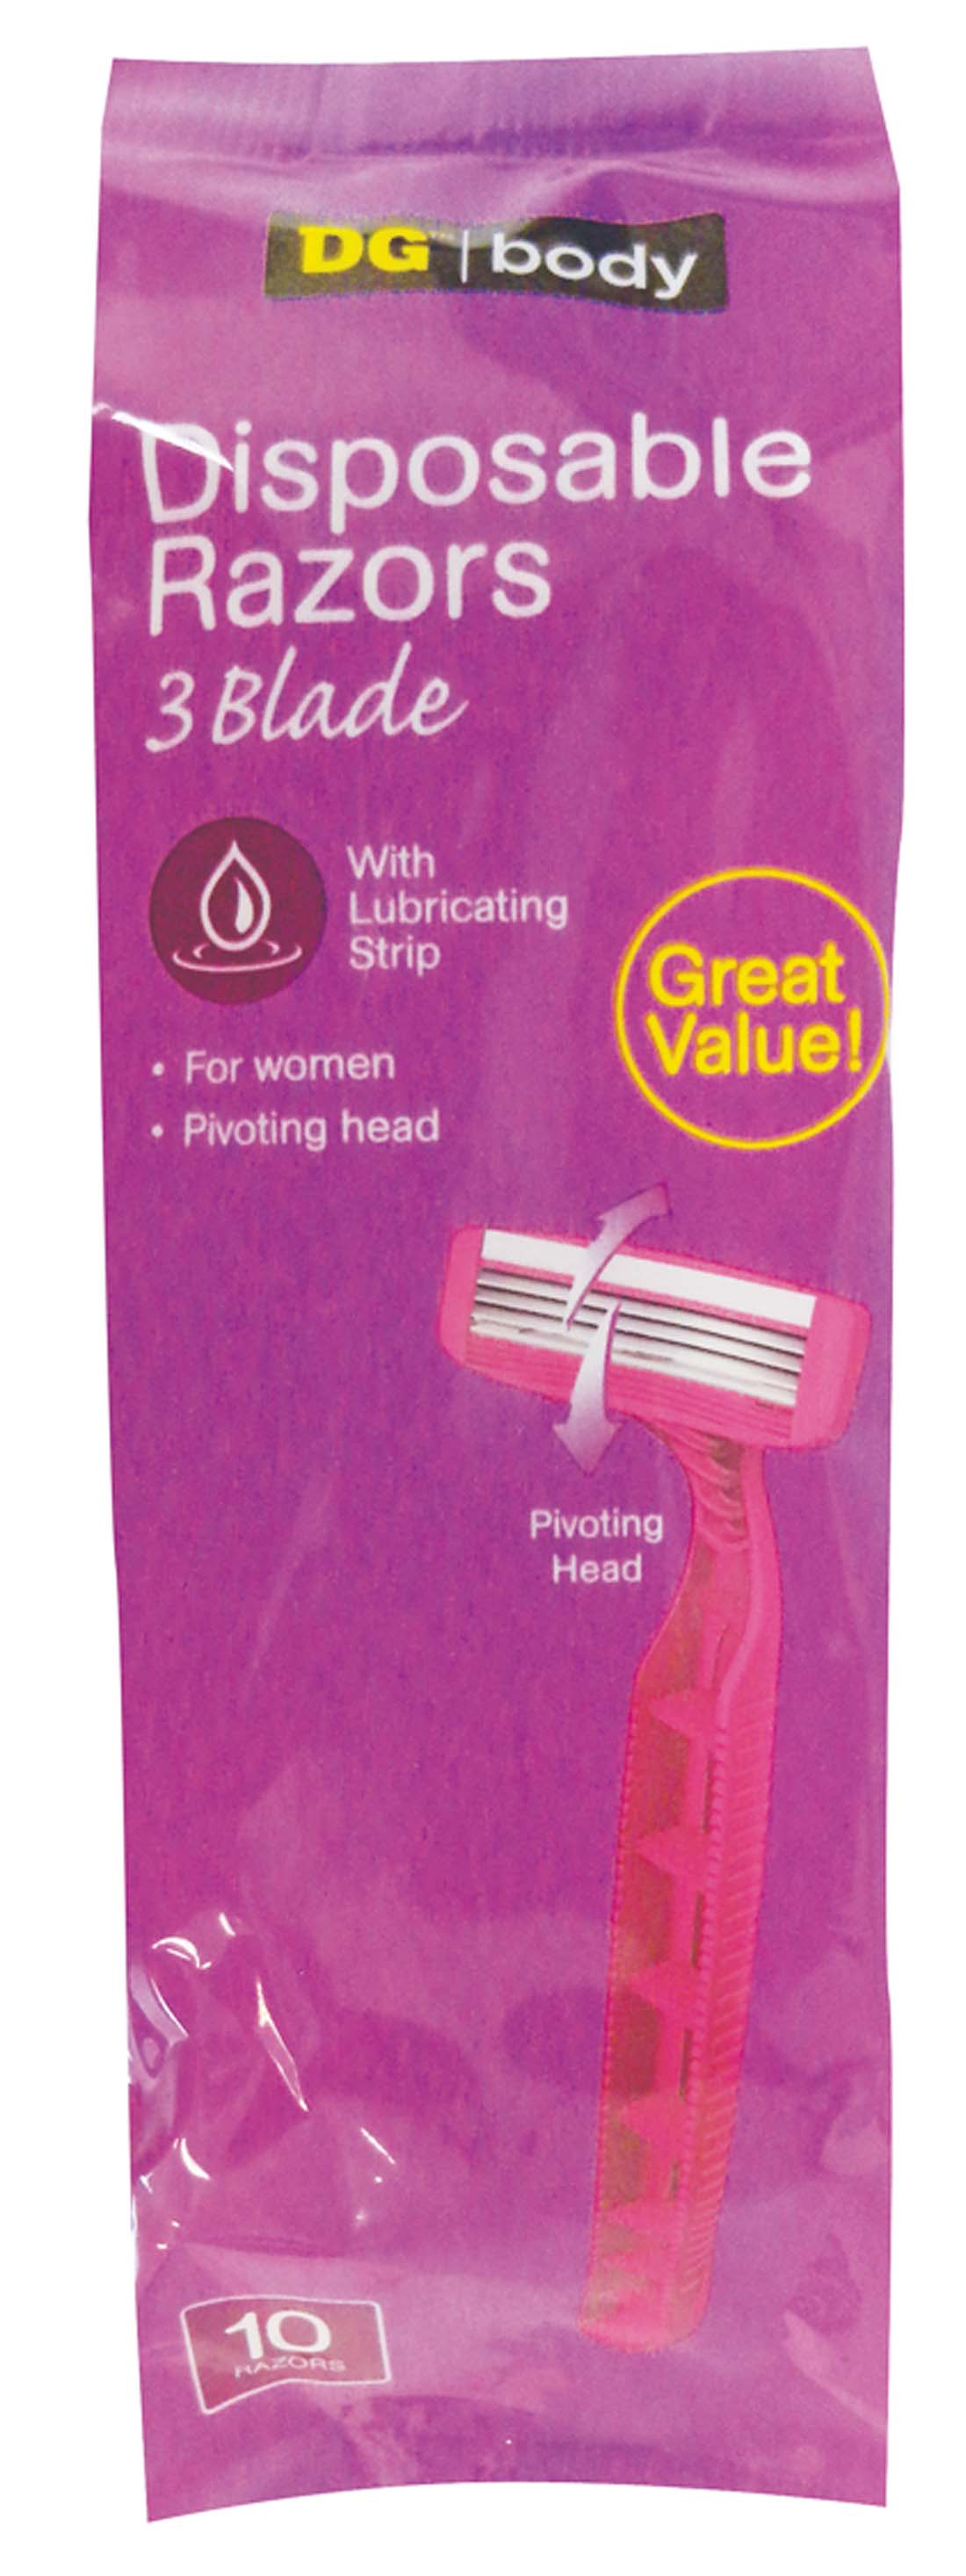 View DISPOSABLE WOMEN RAZORS 3 BLADE 10 COUNT WITH LUBRICATING STRIP